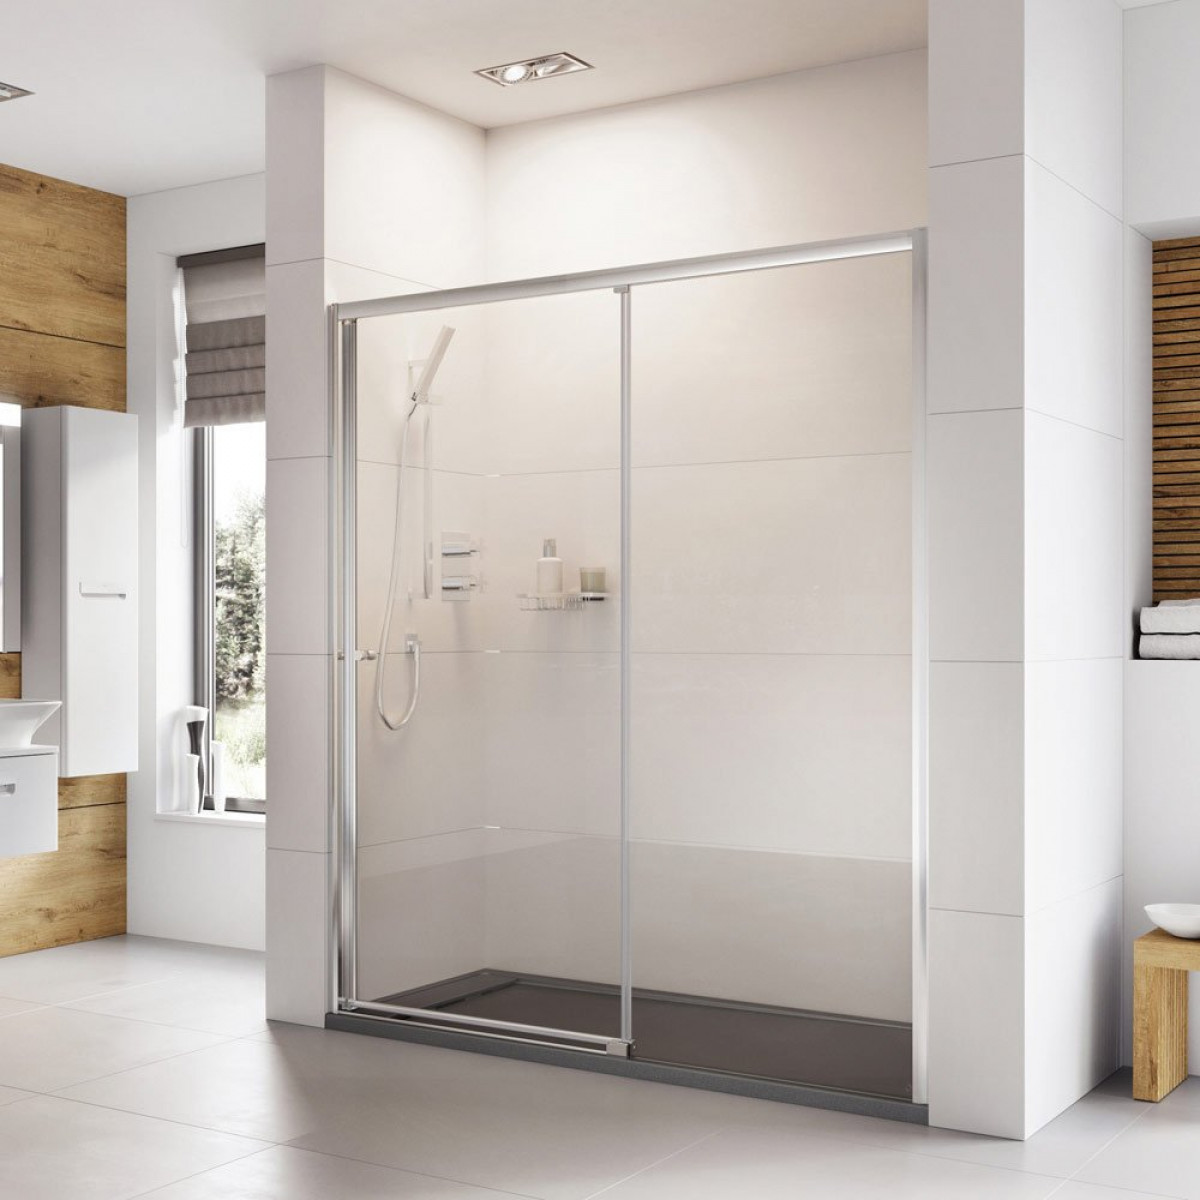 Roman Haven 1700mm Level Access Left Hand Sliding Shower